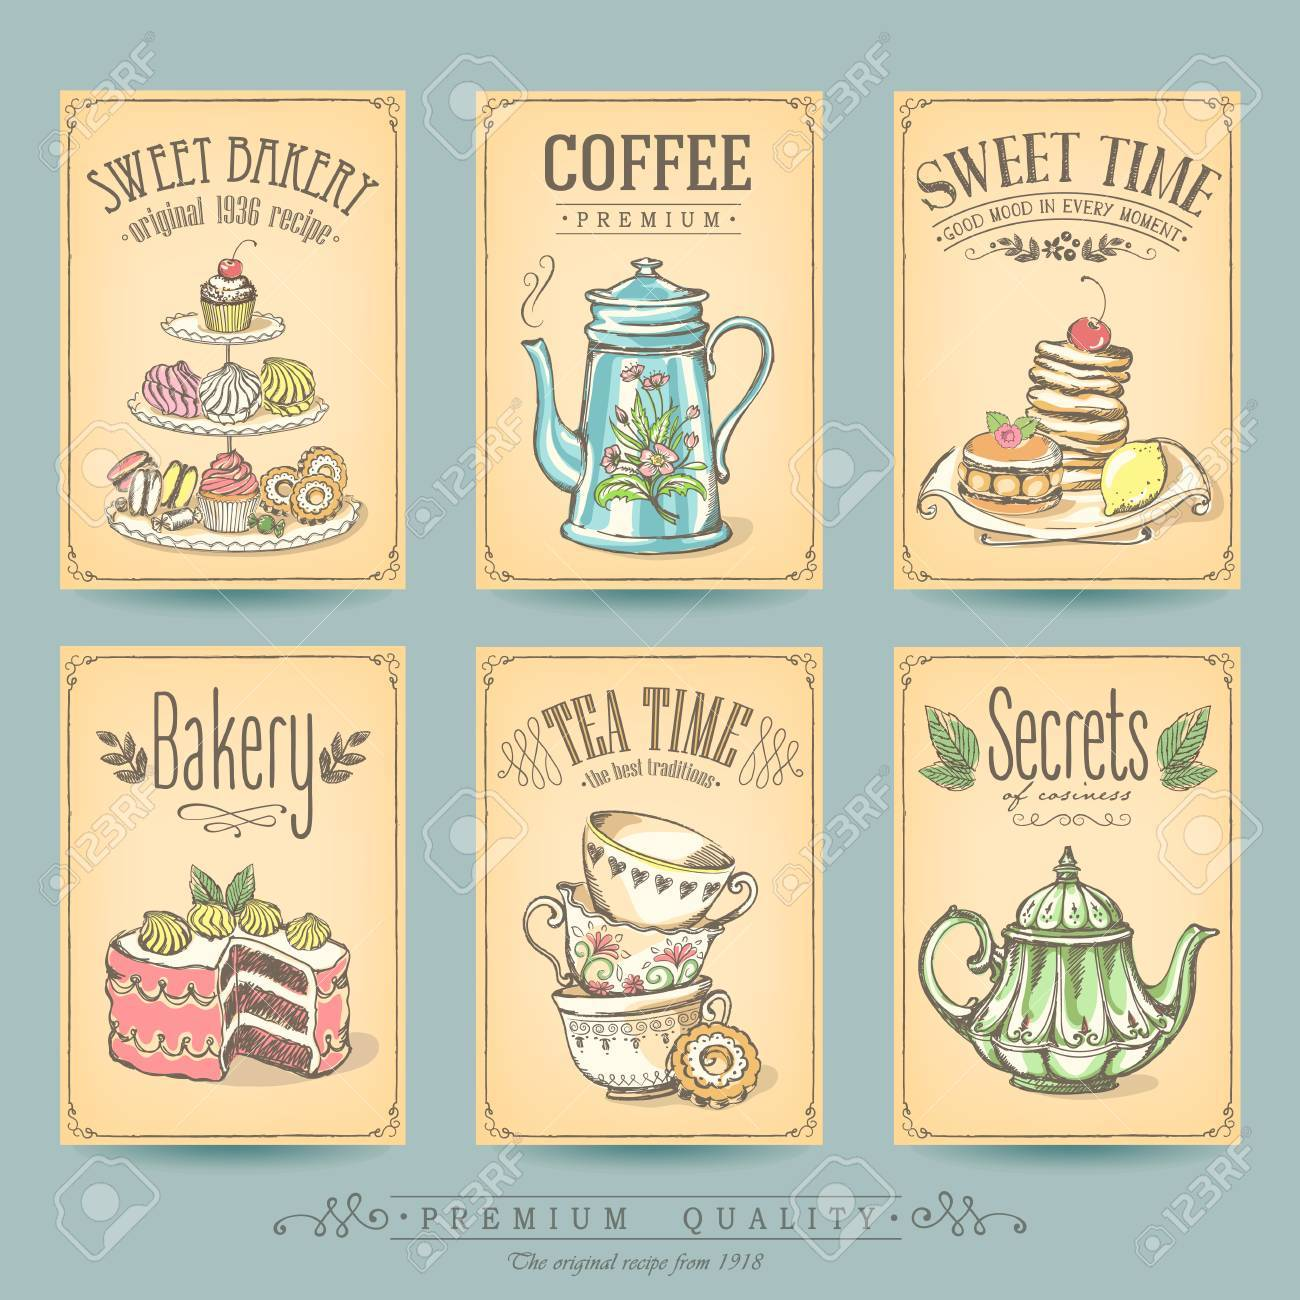 Card collection pastries and tea. Vintage posters of bakery sweet shop or coffee house. Freehand drawing, sketch - 74368999